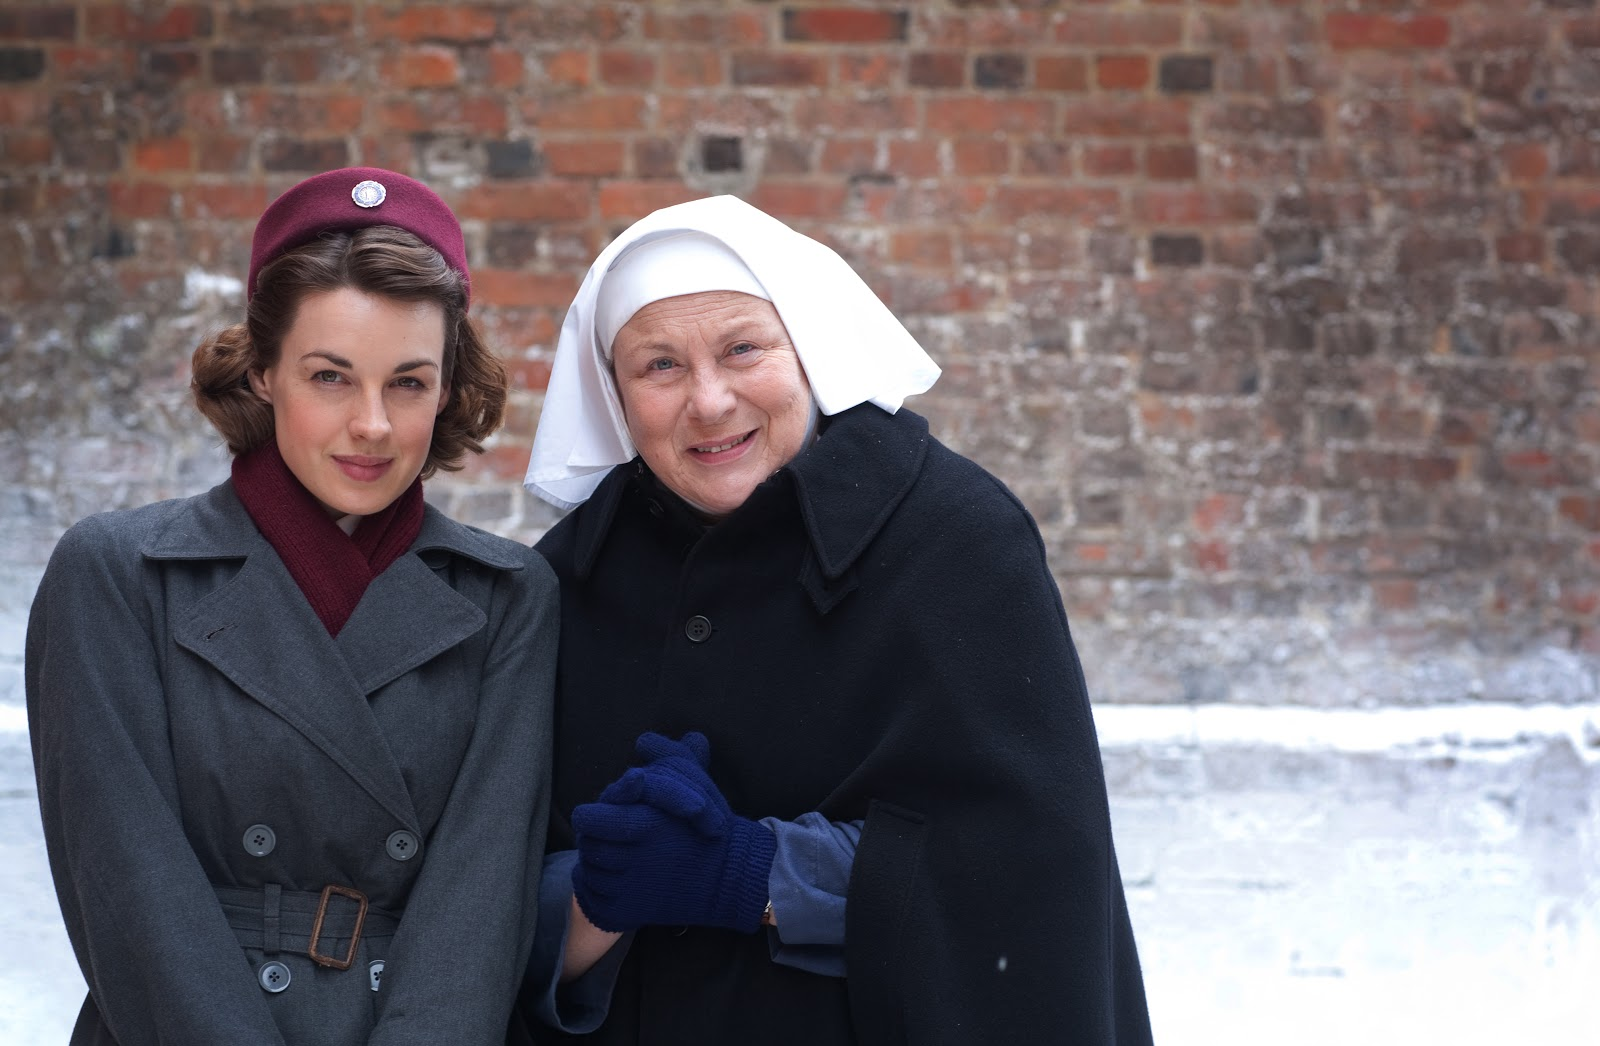 The Jane Austen Film Club Call The Midwife Christmas Special Guest Post By Big Sister